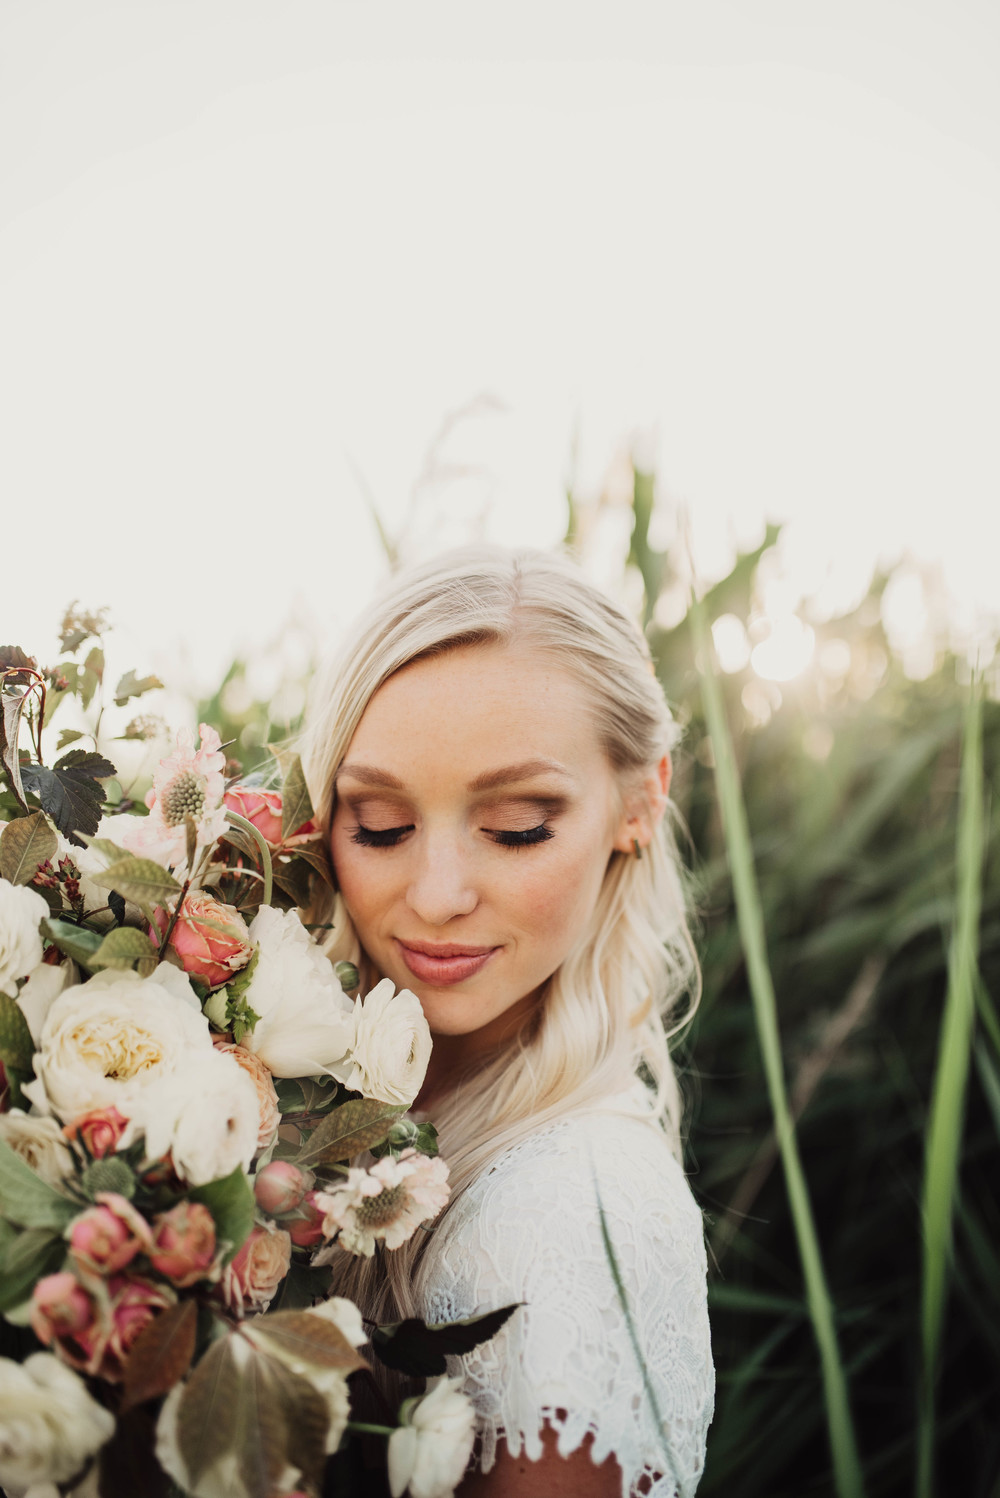 Large neutral bouquet, Ari and Ris floral